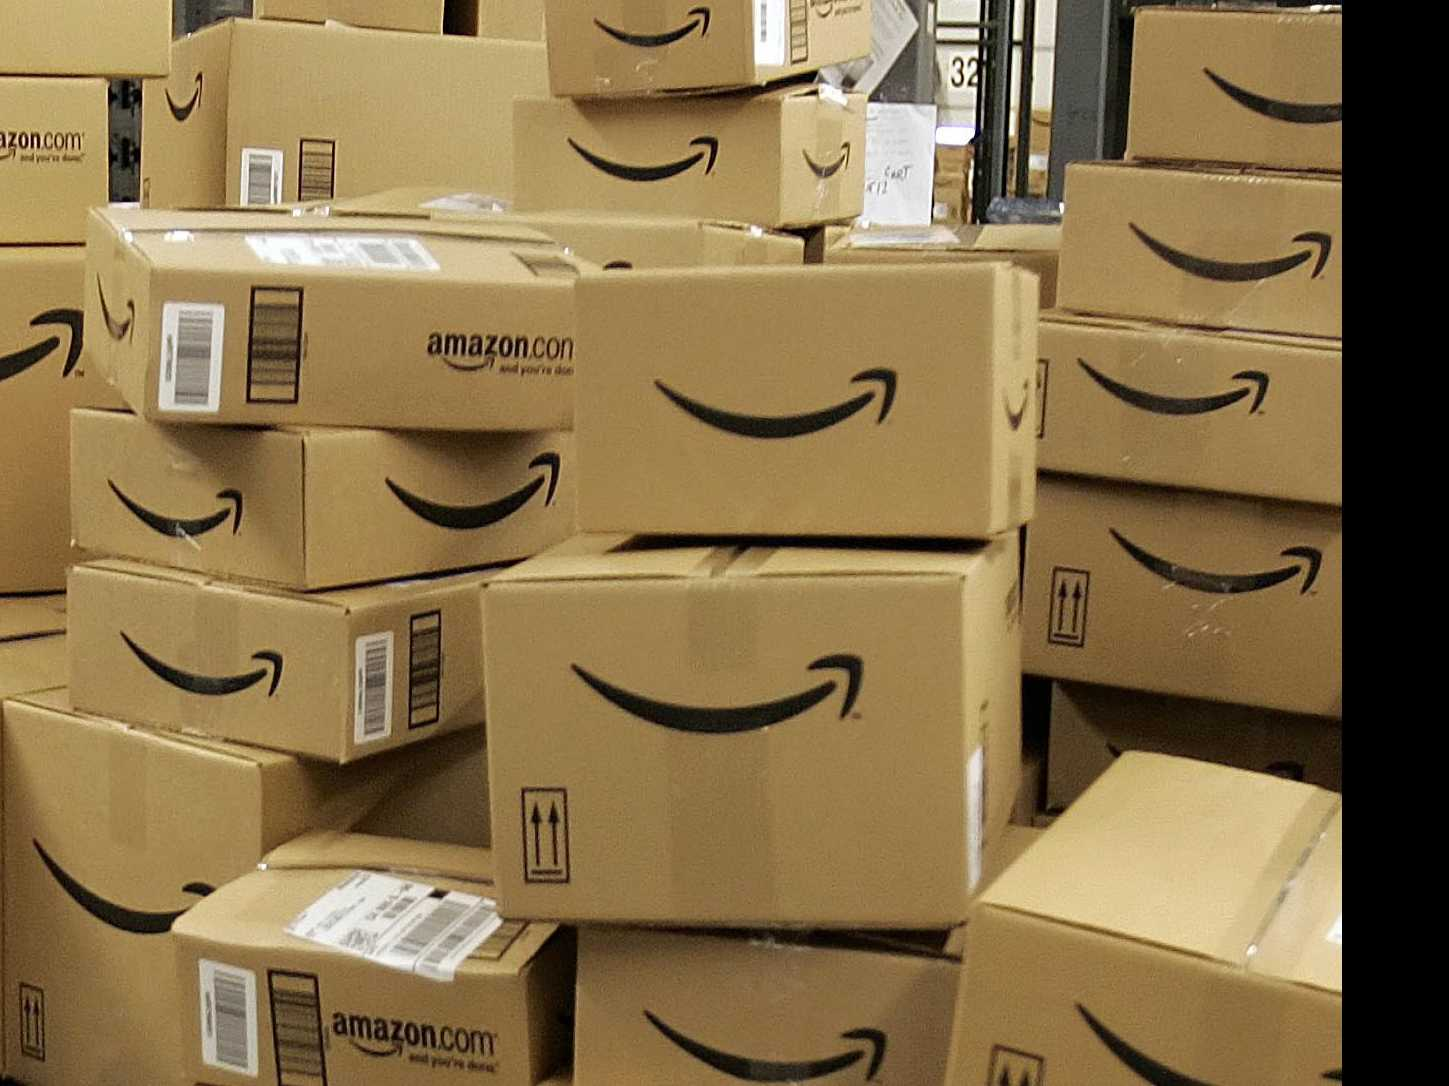 Amazon Raises Monthly Prime Membership Fees by 20 Percent